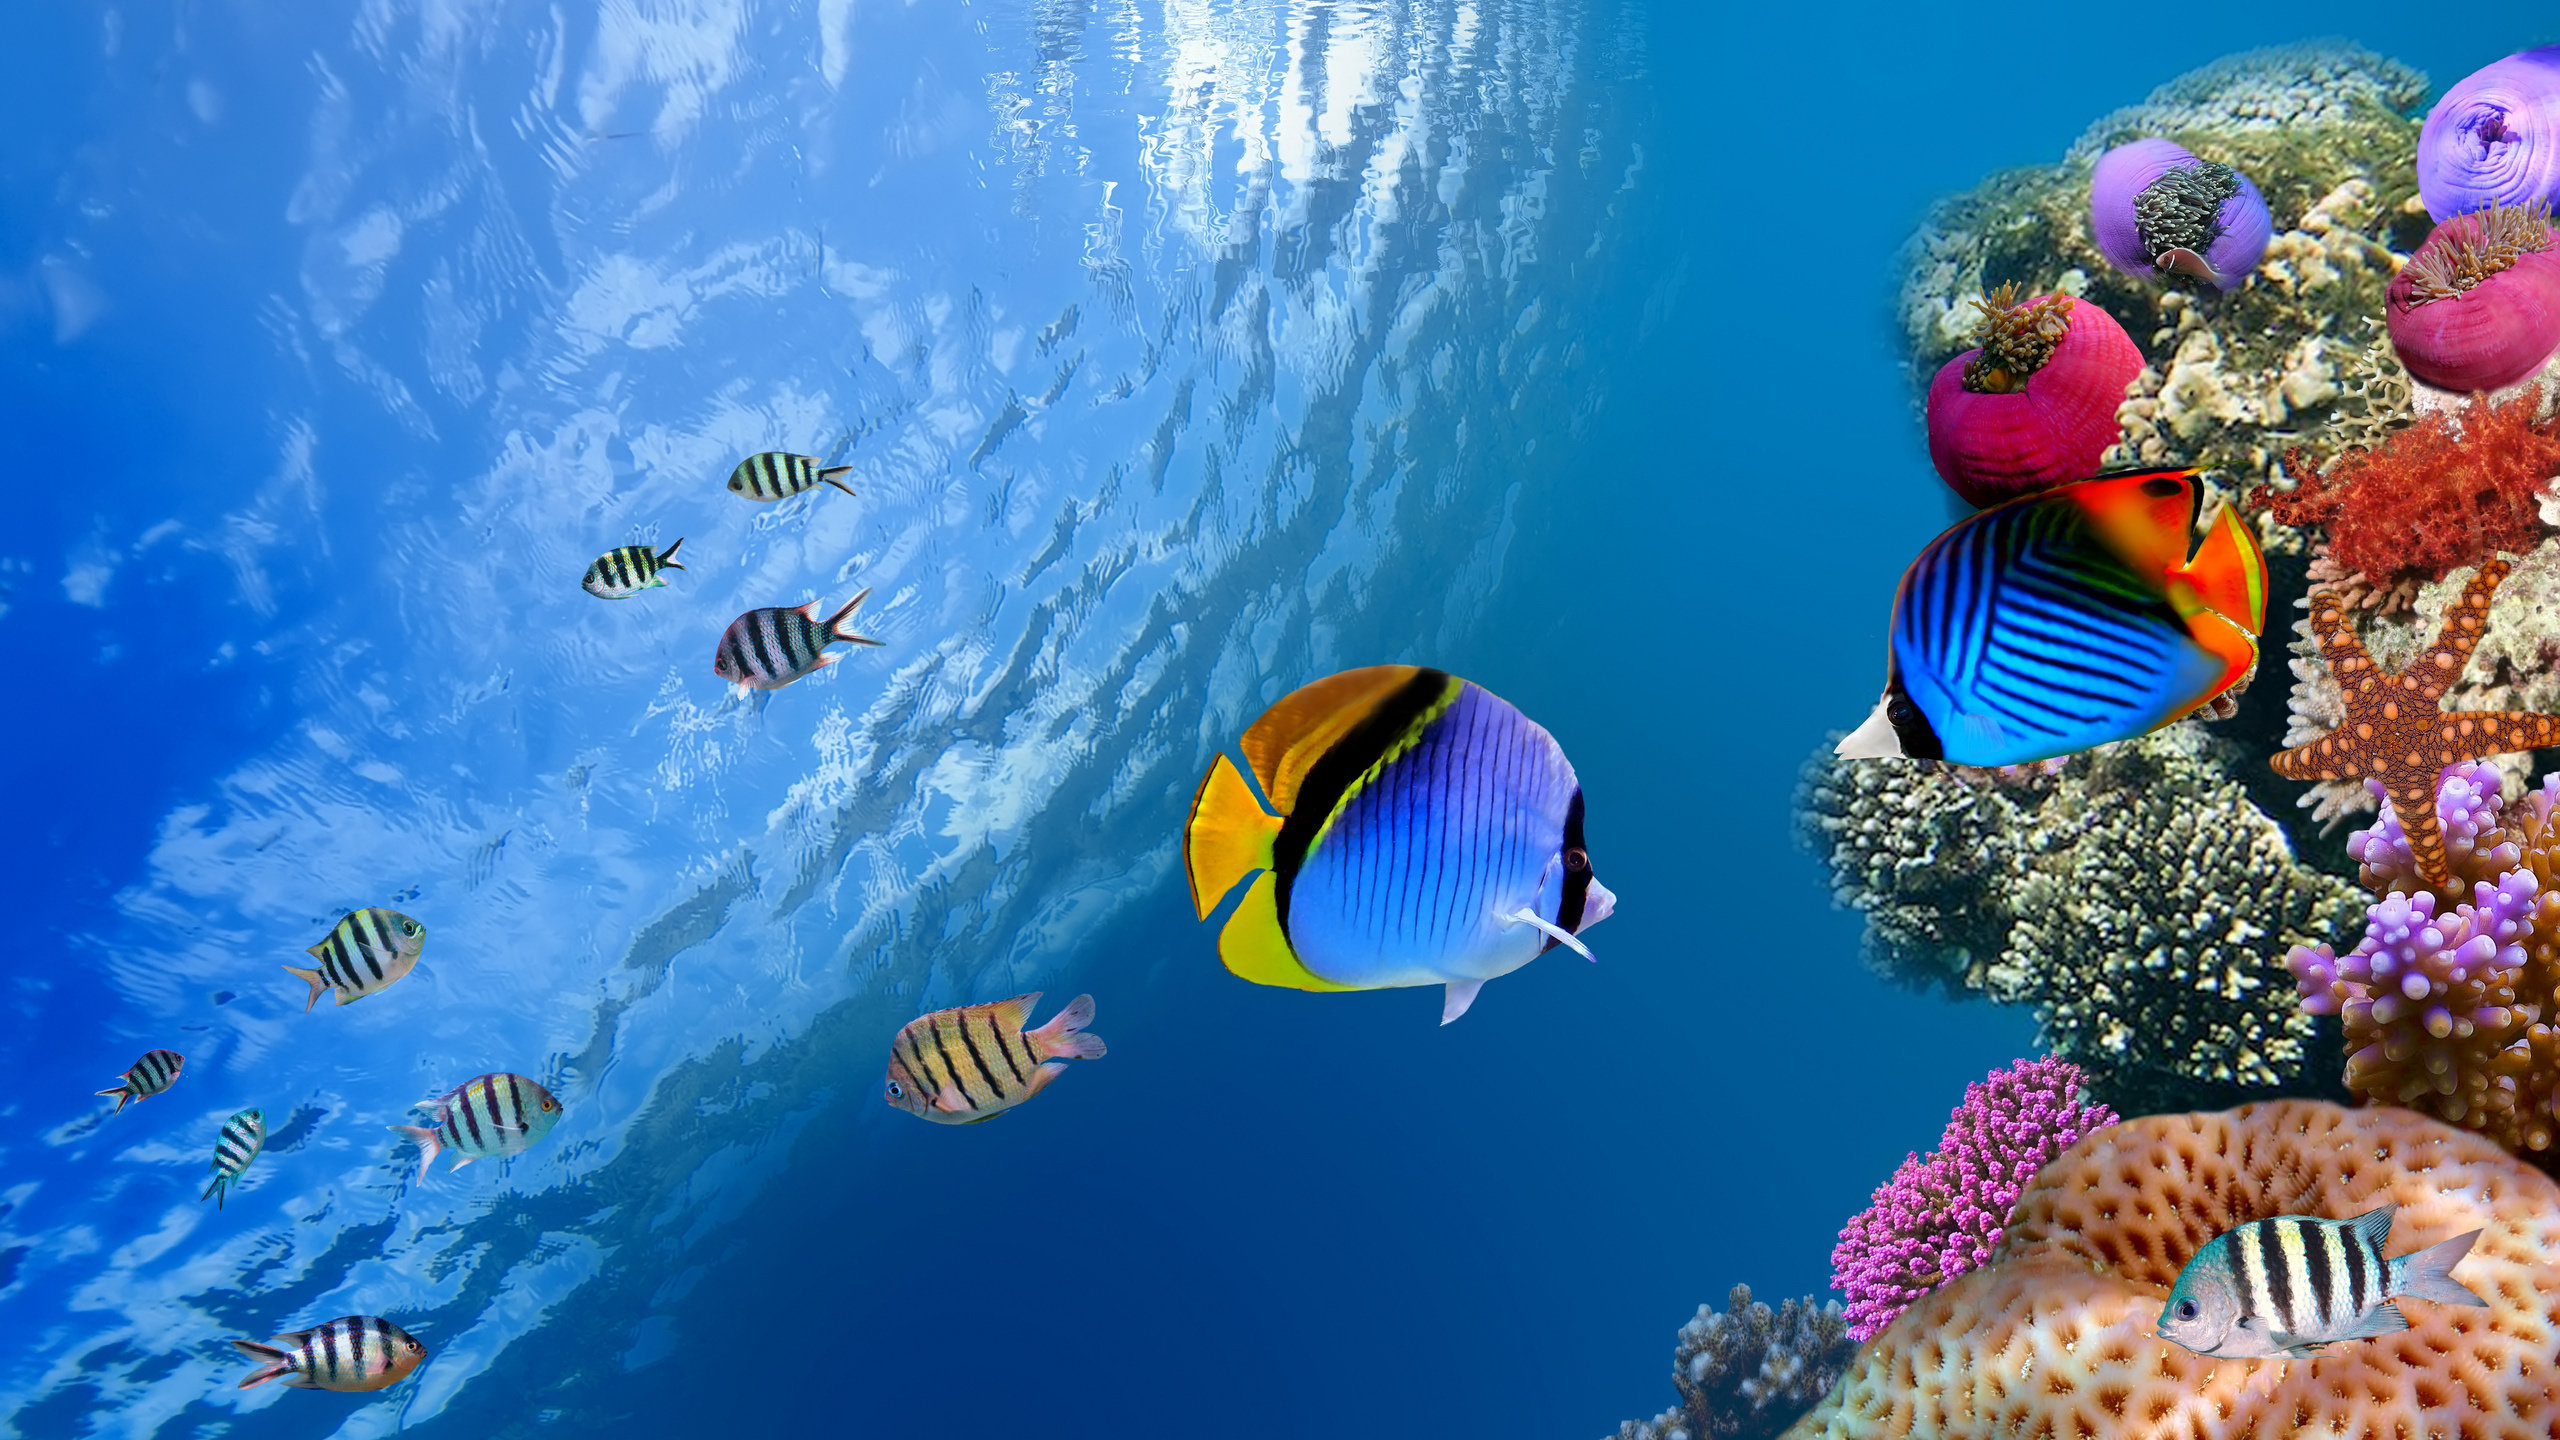 Free download Fish background ID:66067 hd 2560x1440 for computer